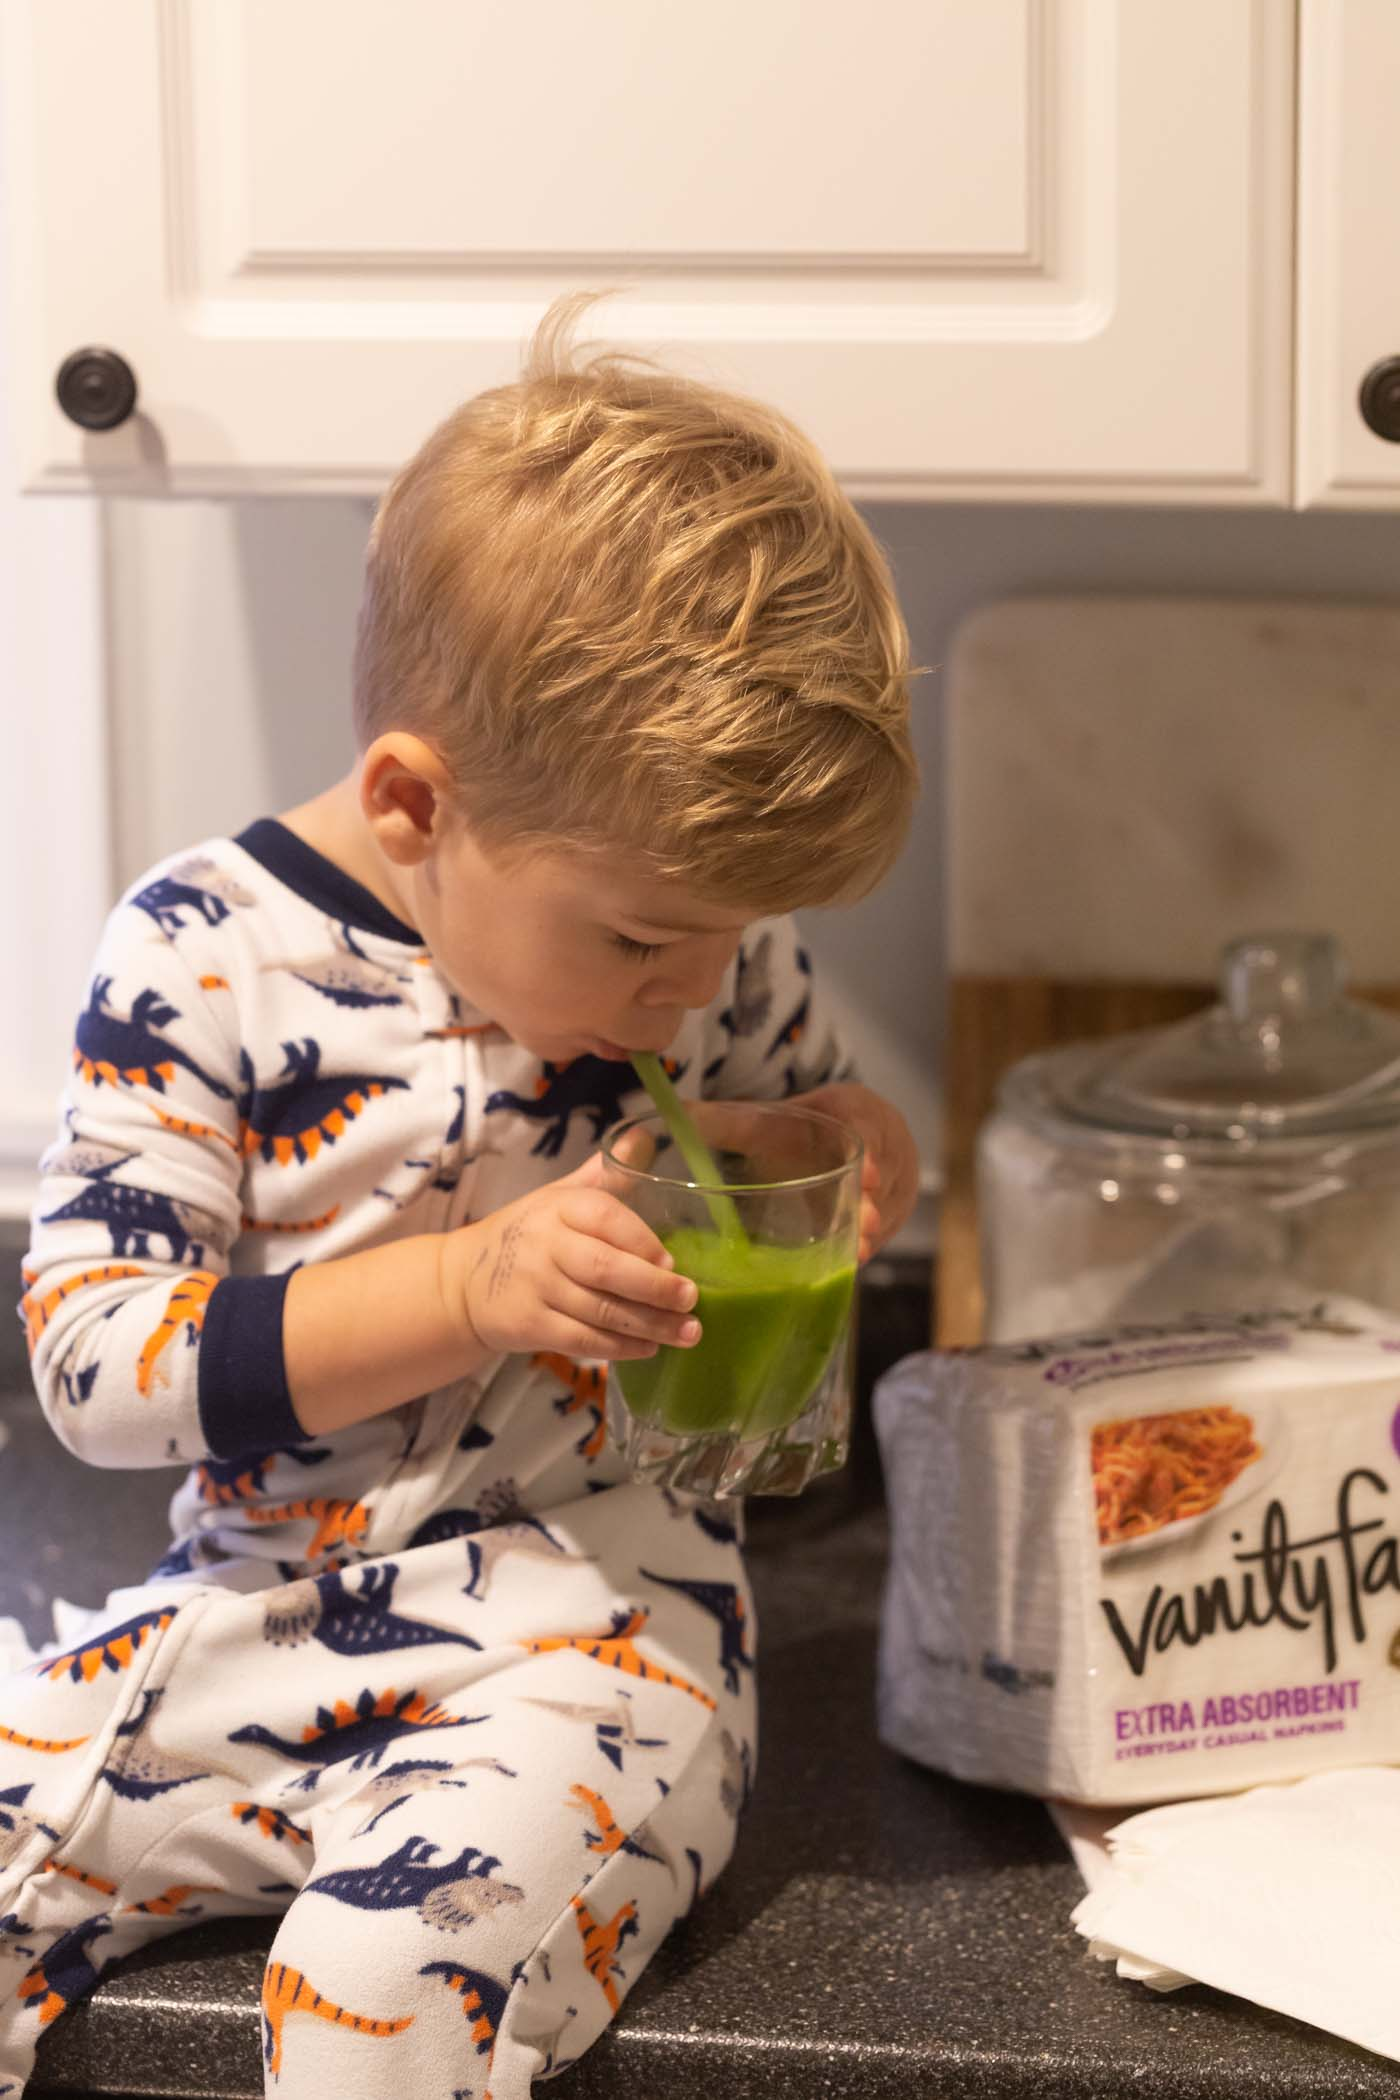 Vanity Fair® Napkins and Our Favorite Green Smoothie made with frozen mango, pineapples, banana, flax seed, TONS of spinach and unsweetened almond milk